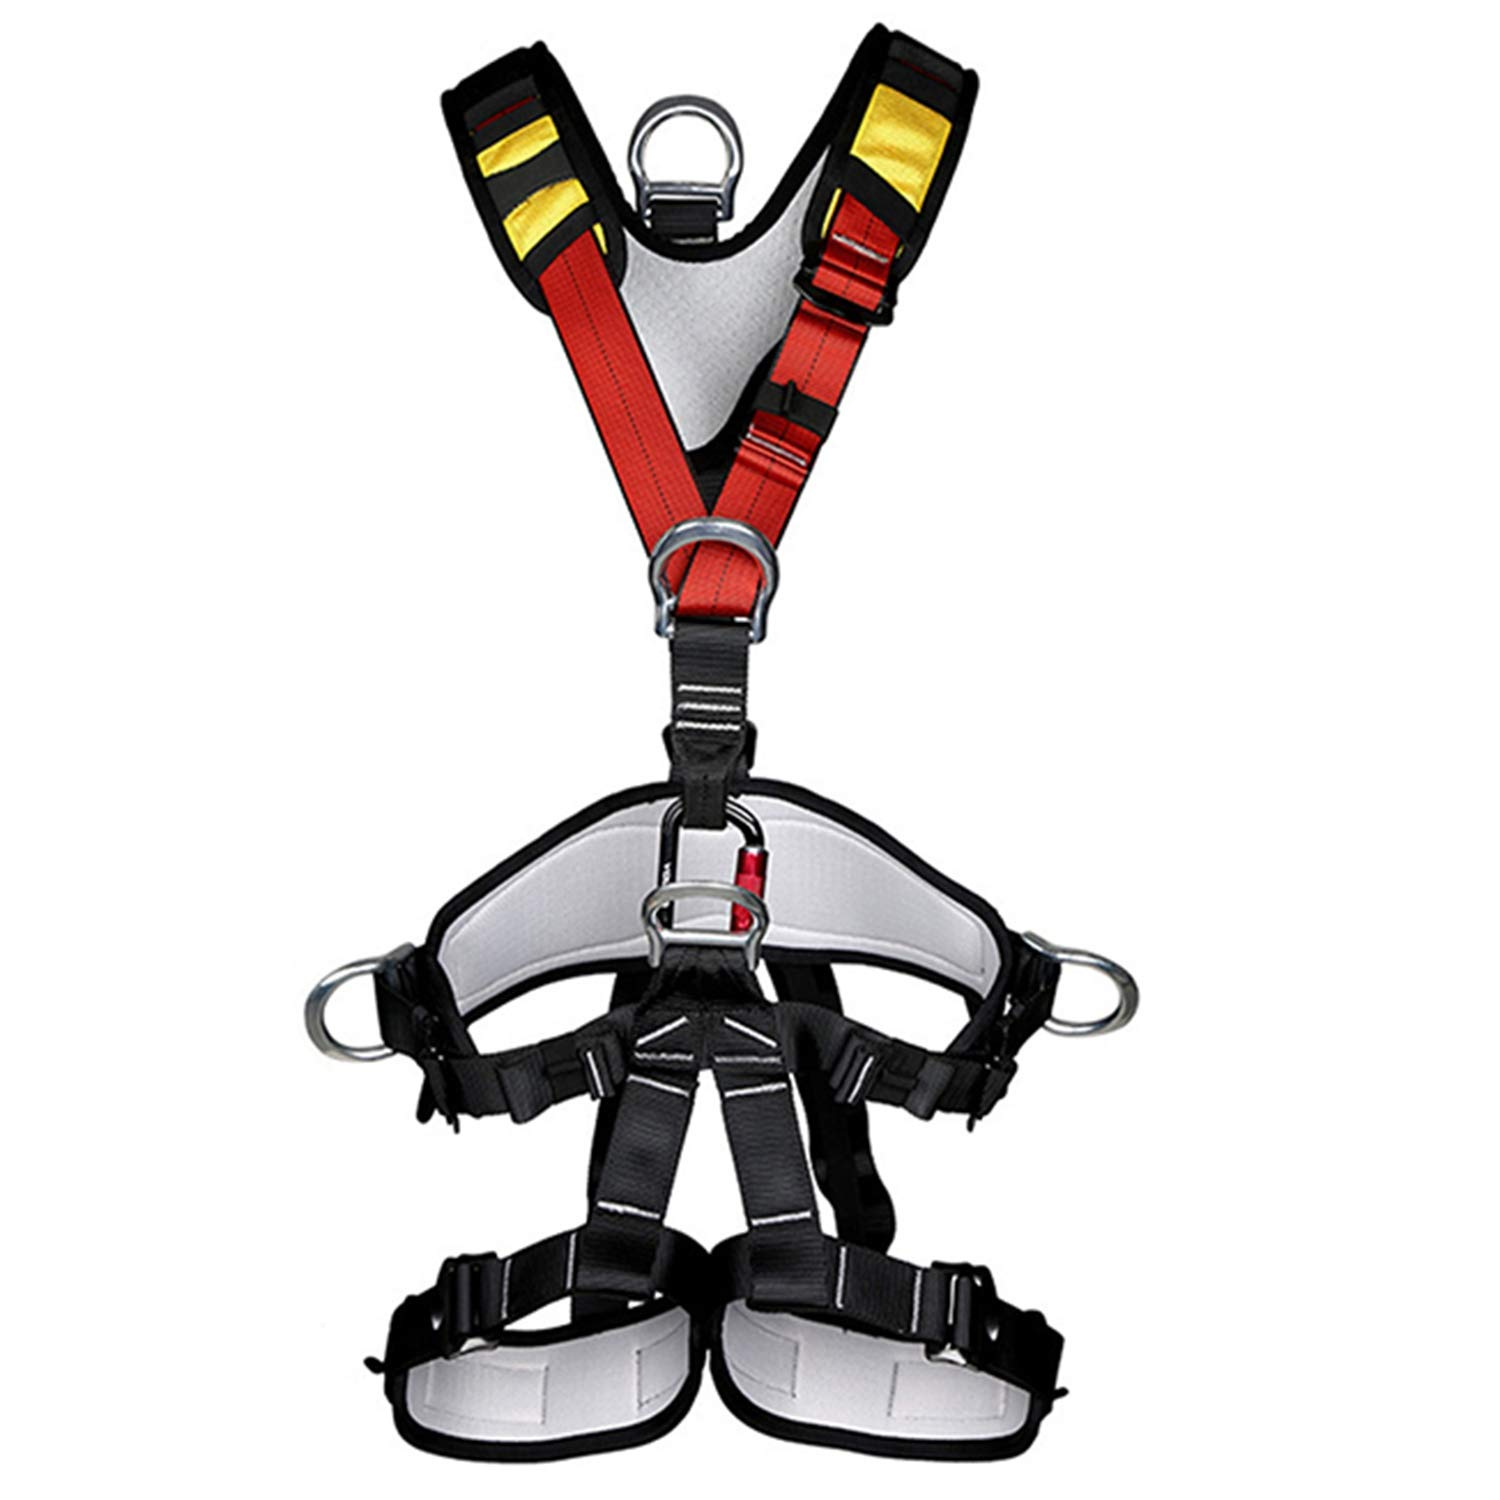 SODIAL Outdoor Climbing Rock Rappelling Mountaineering Accessories Body Wearing Seat Belt Sitting Waist Bust Protection by SODIAL (Image #1)